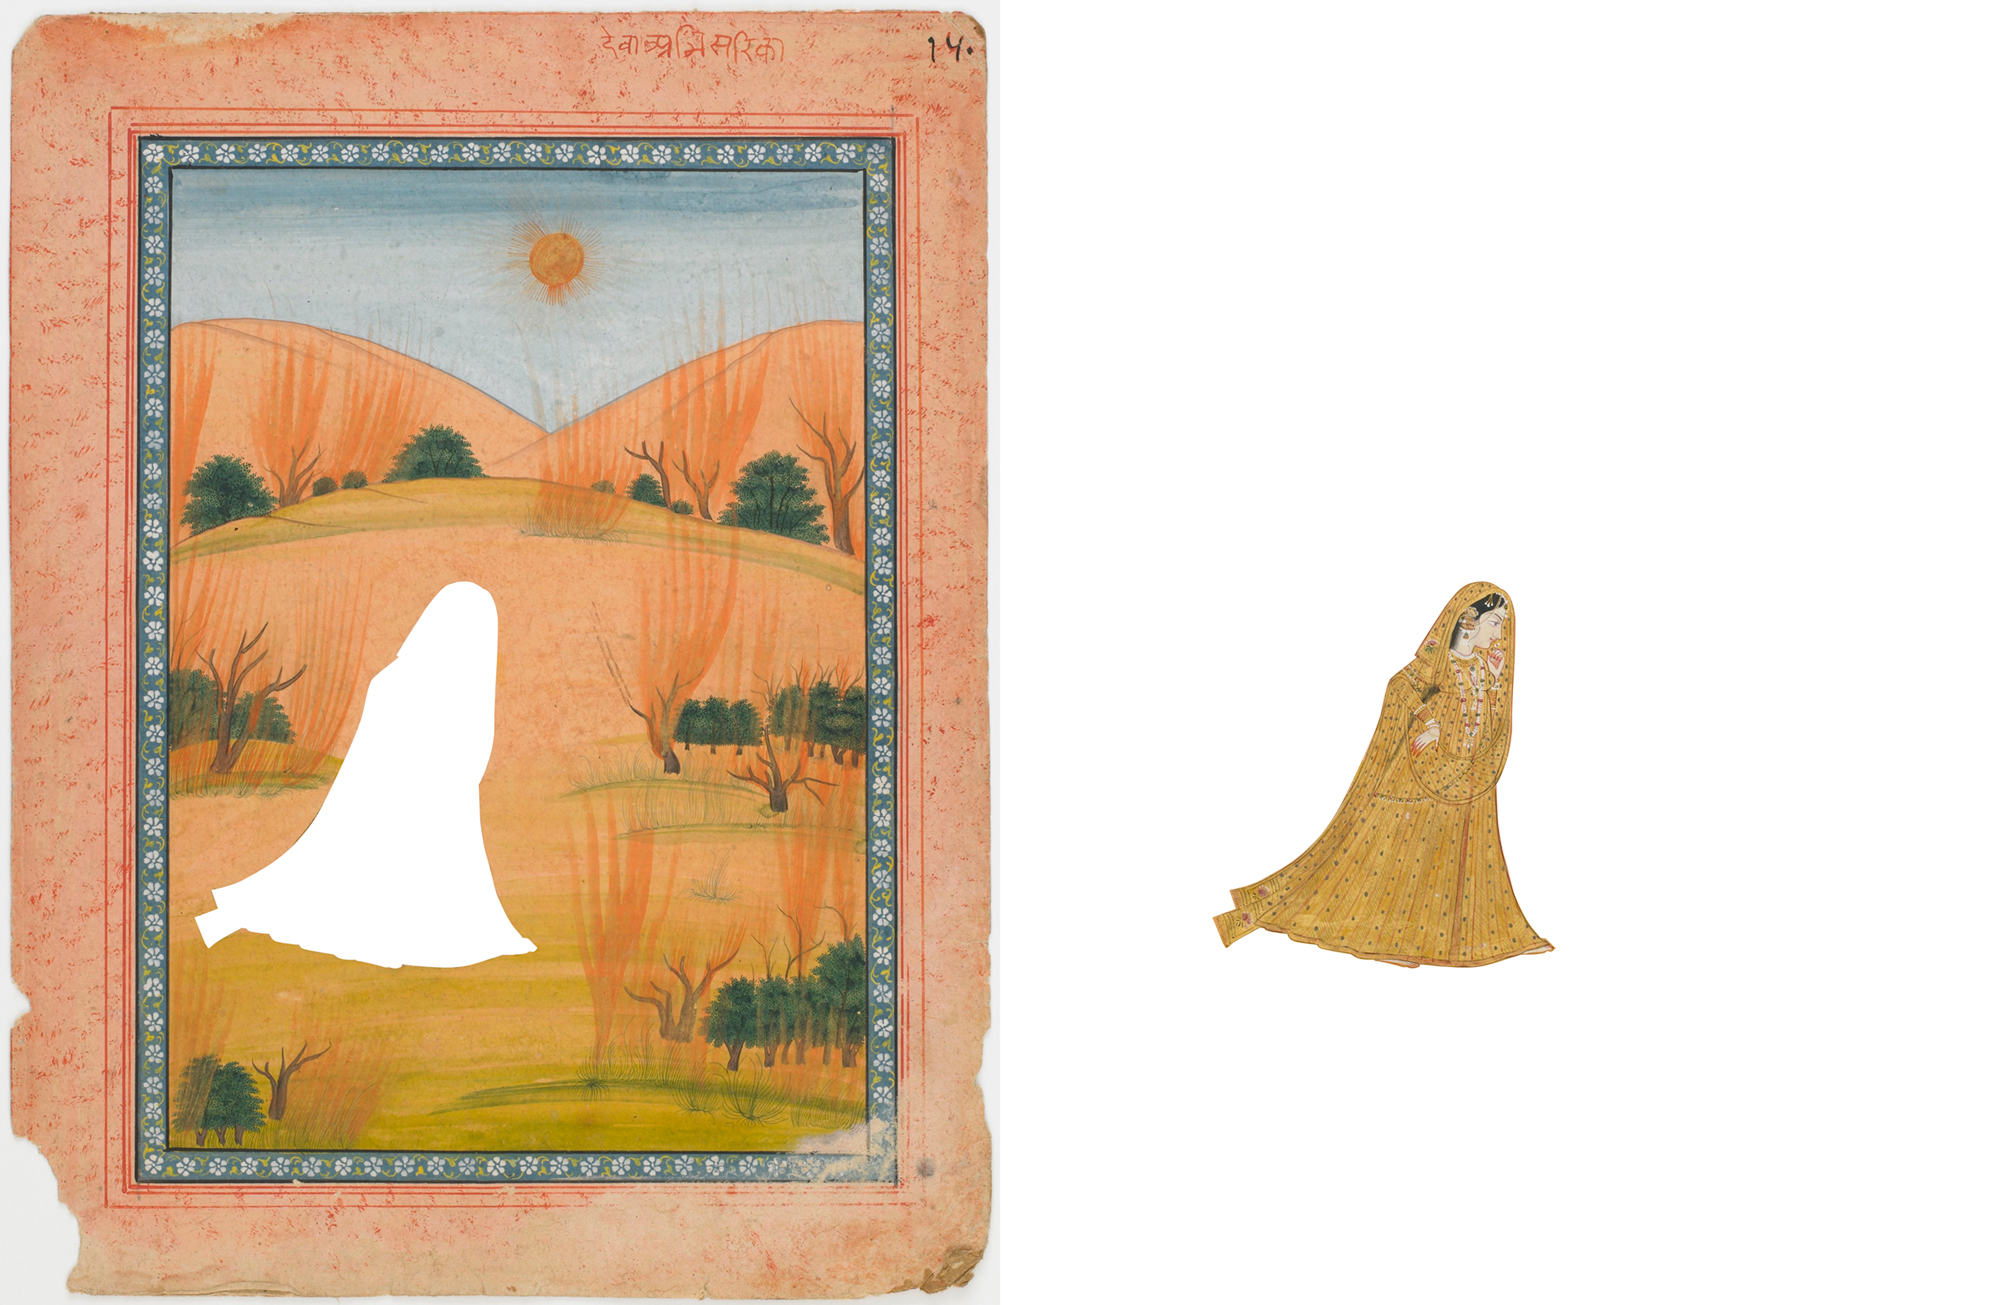 Smithsonian Asian Museum, south Asia collection